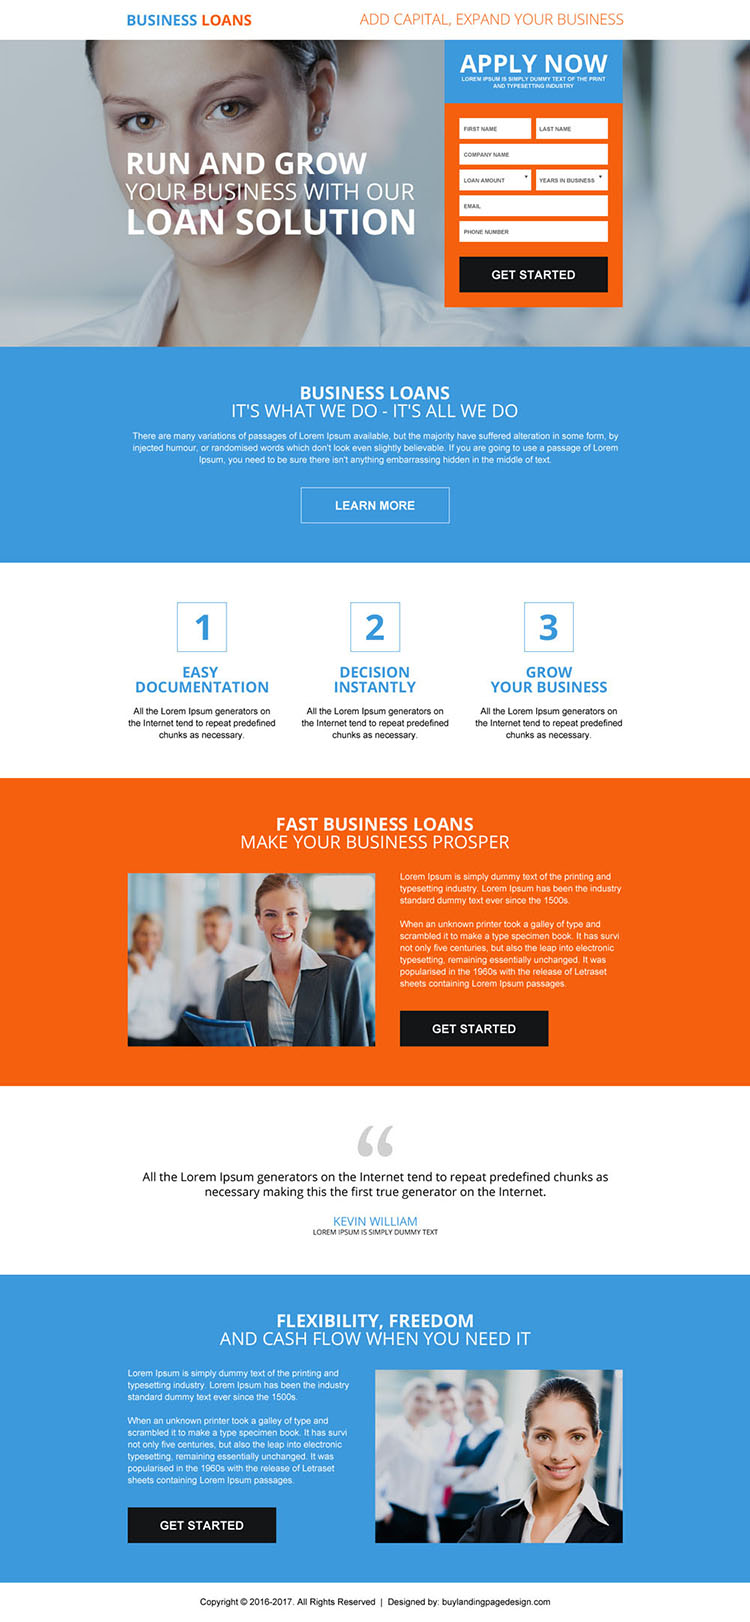 business loan to expand your business responsive landing page design